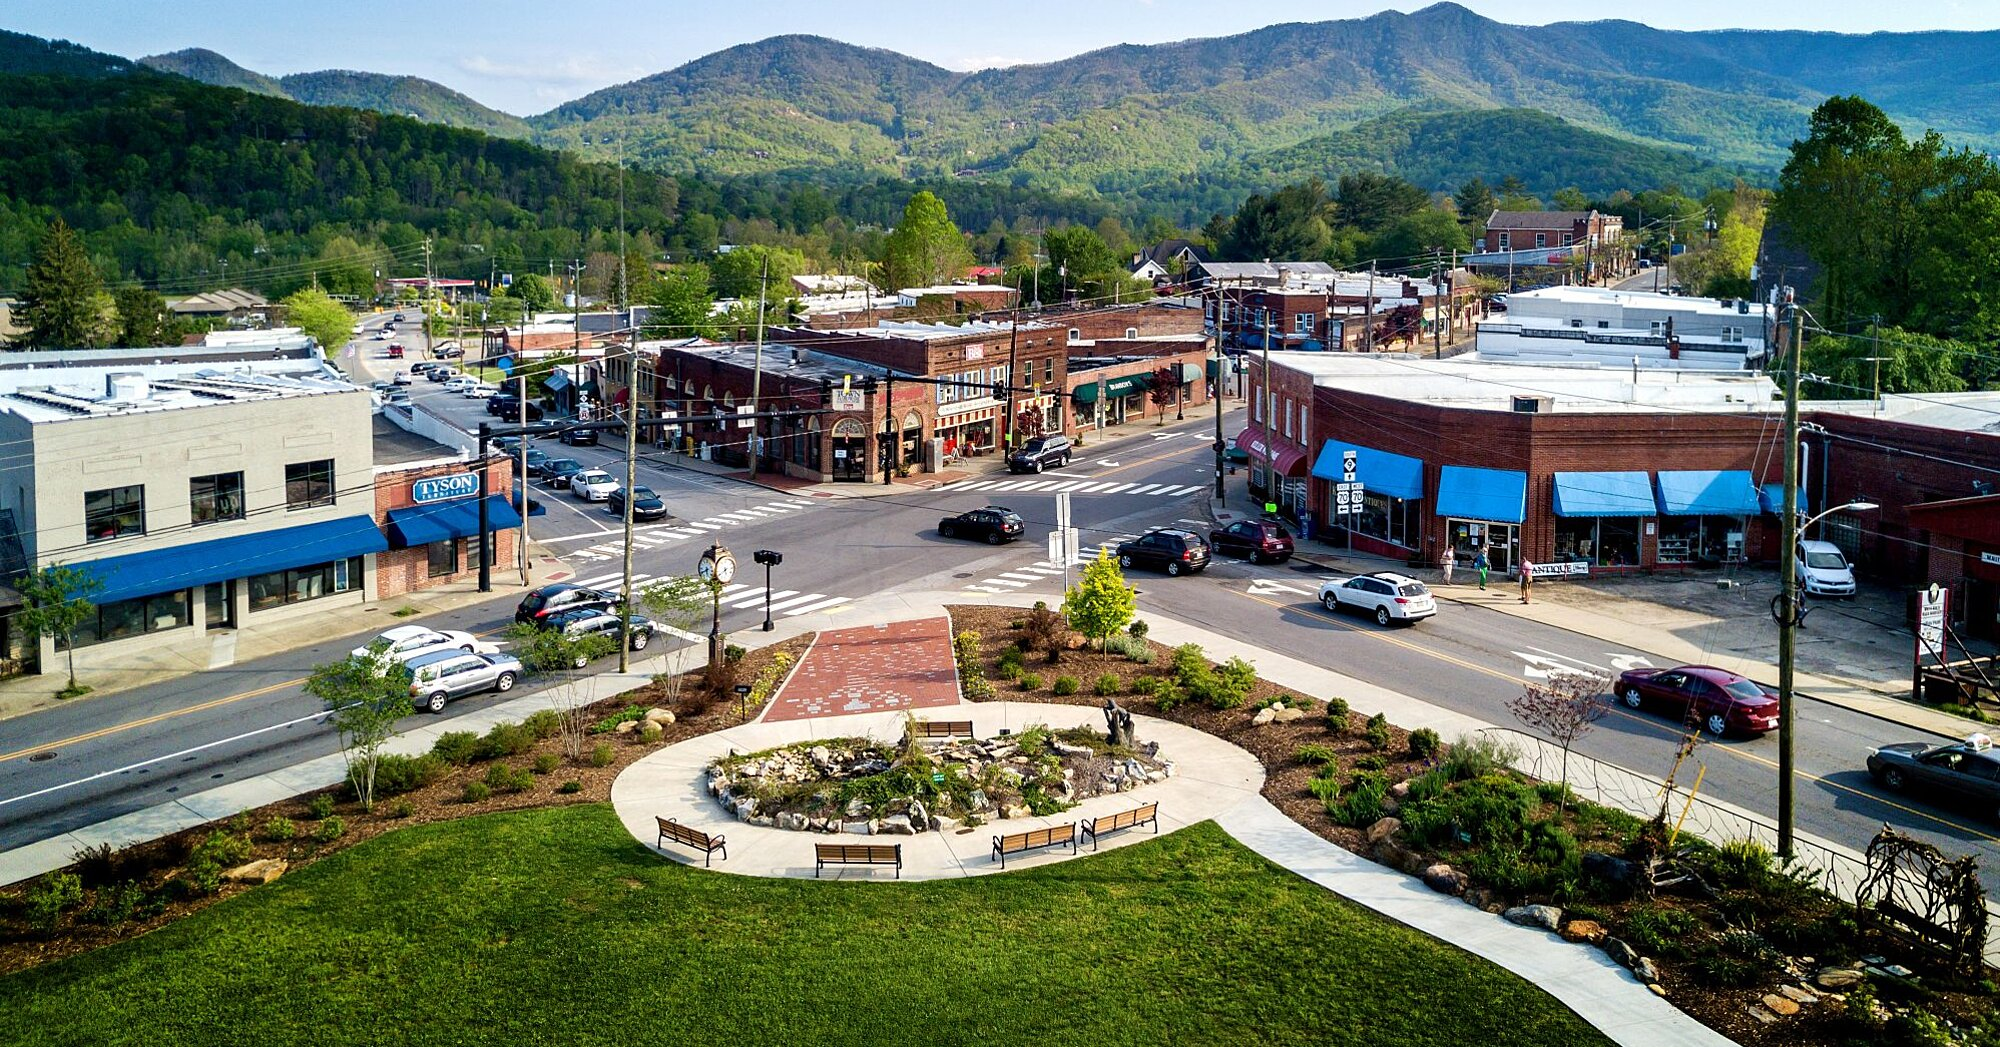 Reasons to Visit Black Mountain, North Carolina, a Picturesque Small Town